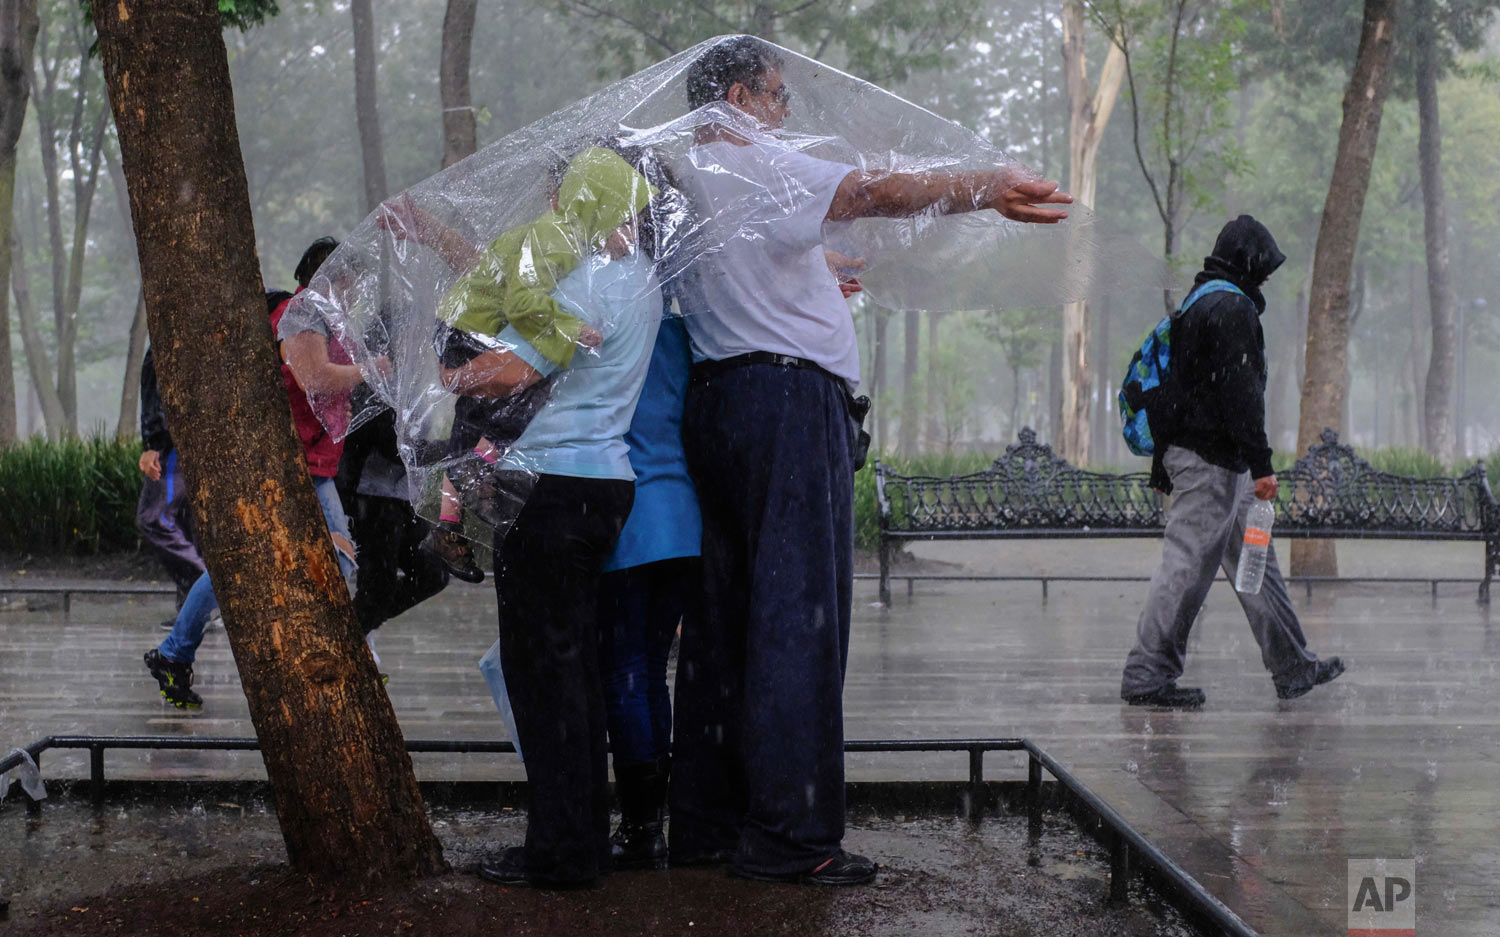 Fernando Rodriguez Garcia covers his family with a plastic sheet during a sudden downpour as he and his family take a walk through Alameda park in Mexico City, Aug. 12, 2018. (AP Photo/Anthony Vazquez)